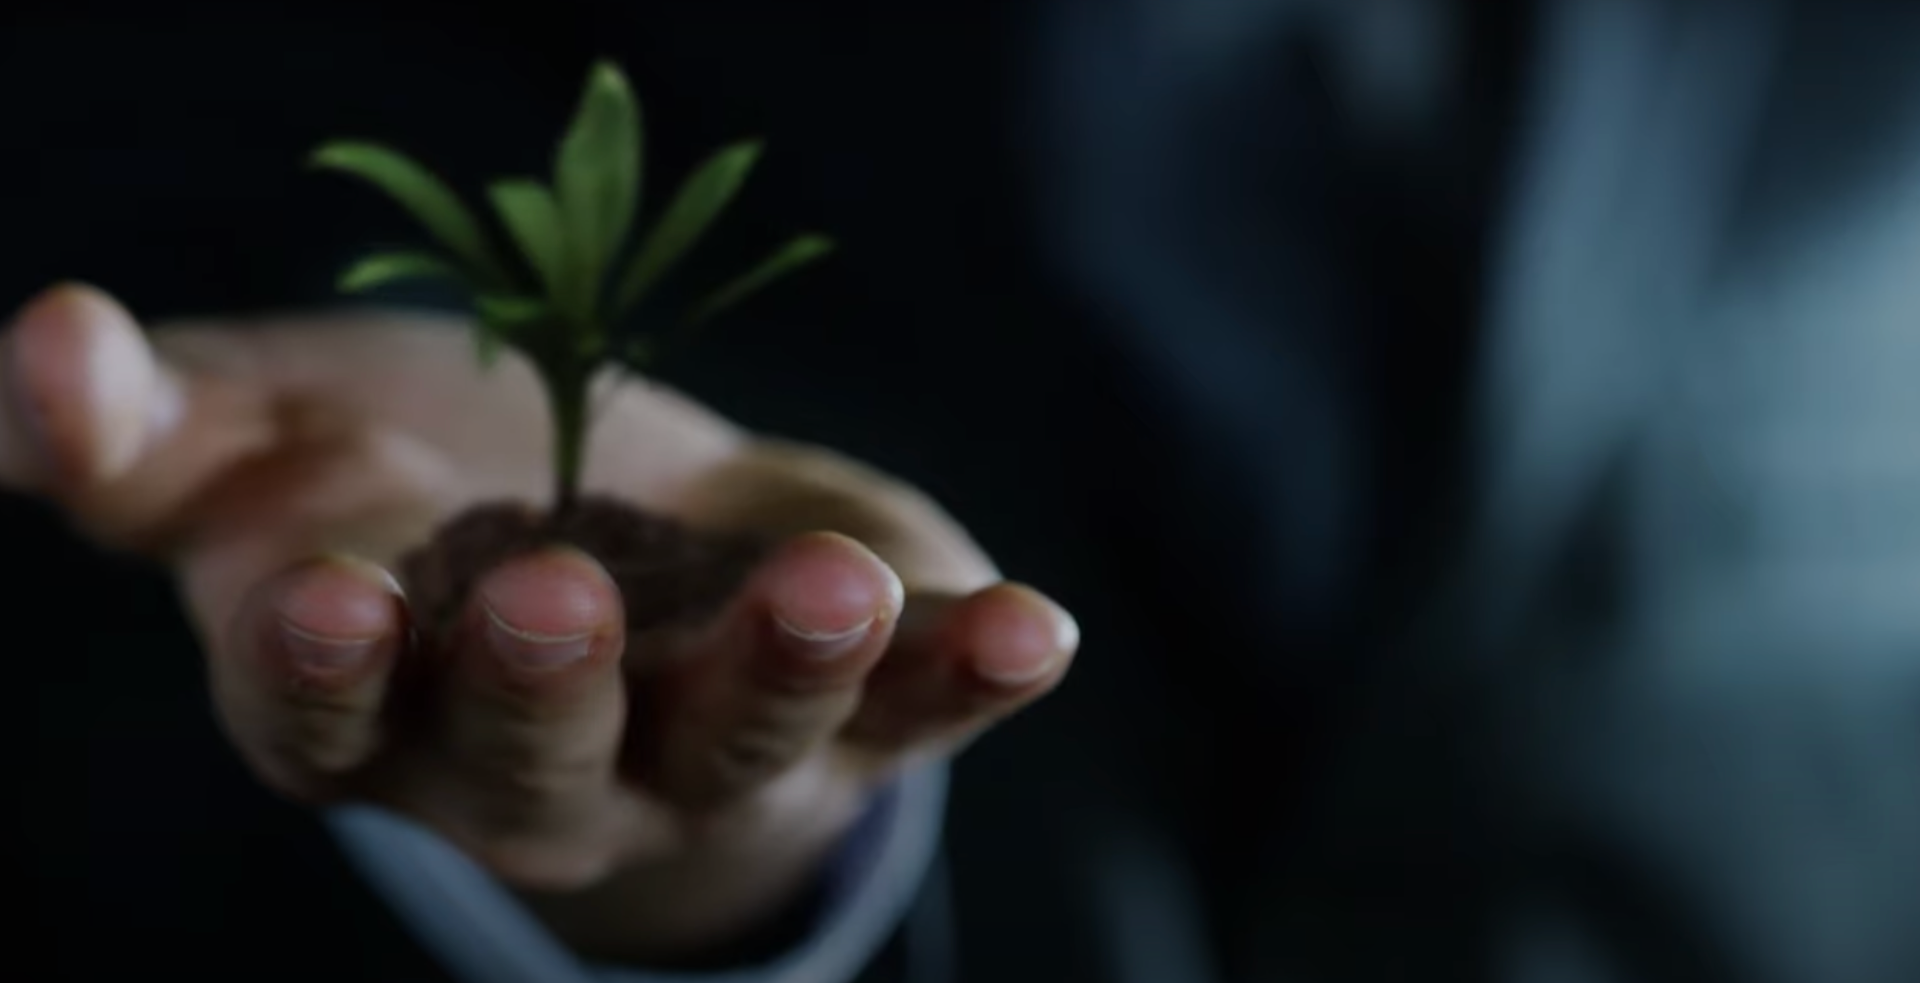 "<img src=""manwithplant.png"" alt=""man with outstretched hand with a plant growing from his palm"">"